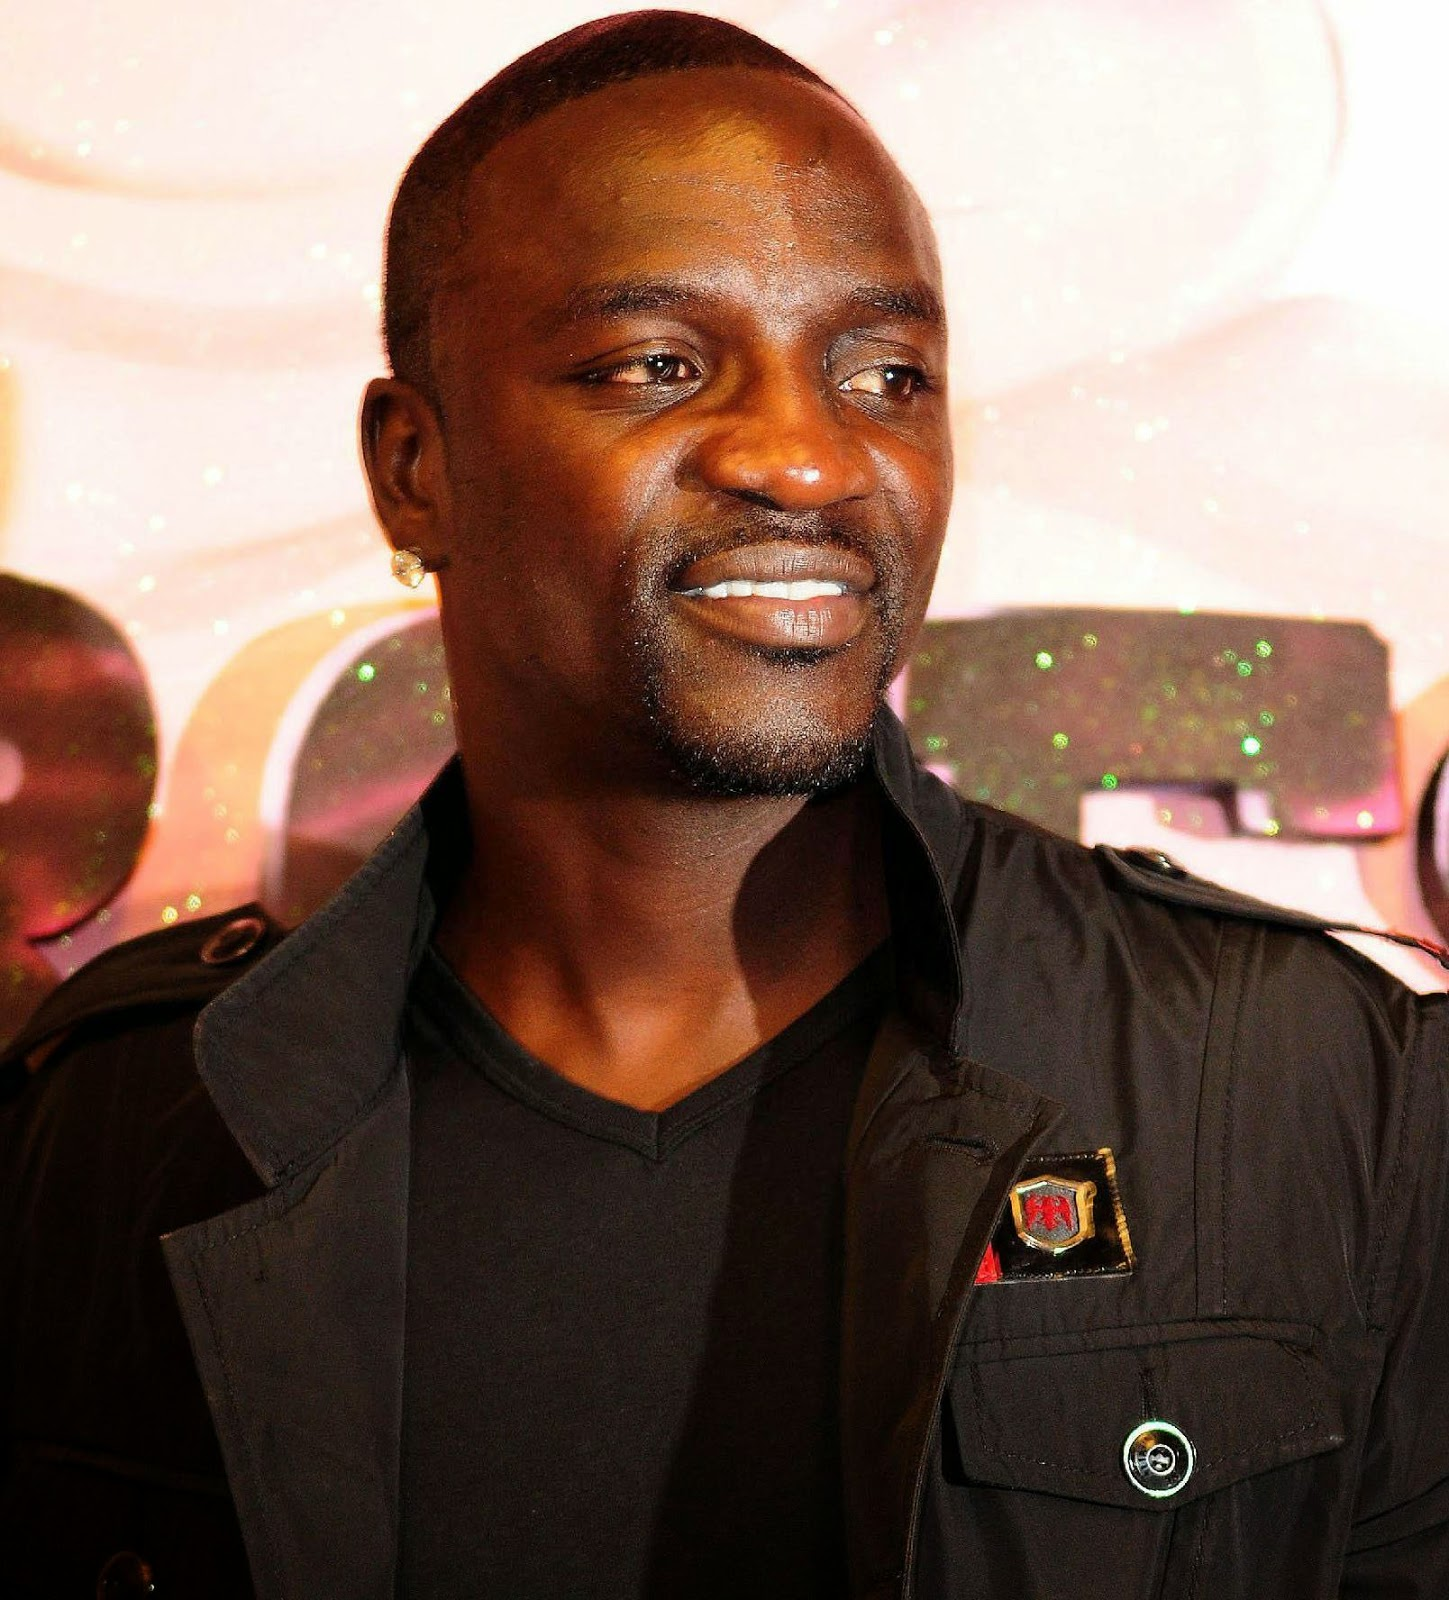 Addicted to Music   : Best Songs of Akon free download here